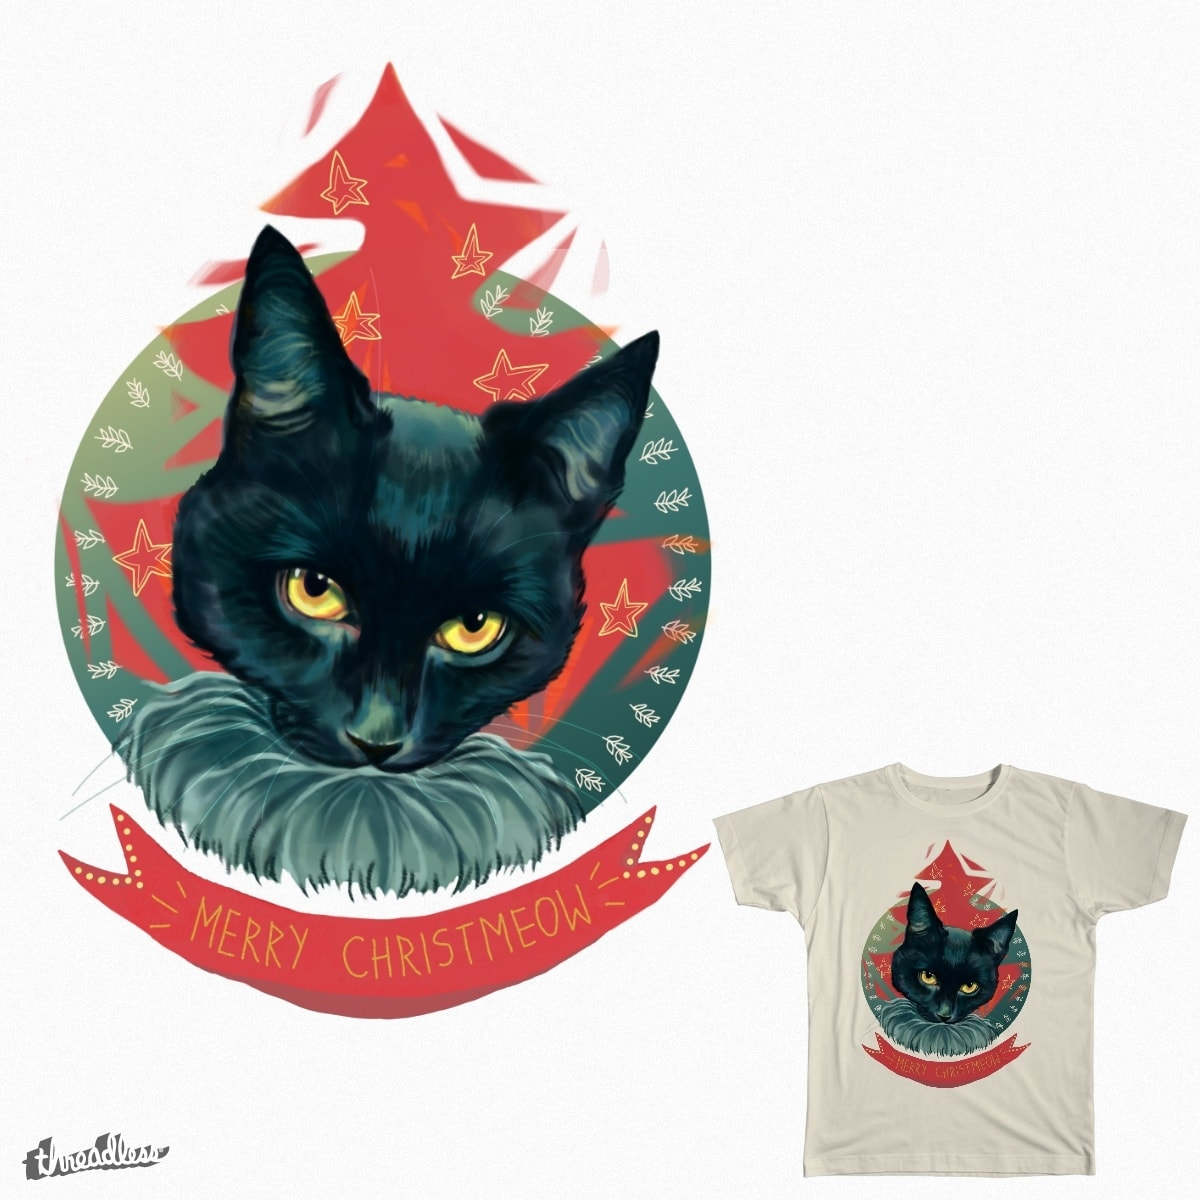 Merry Christmeow  by margaw on Threadless